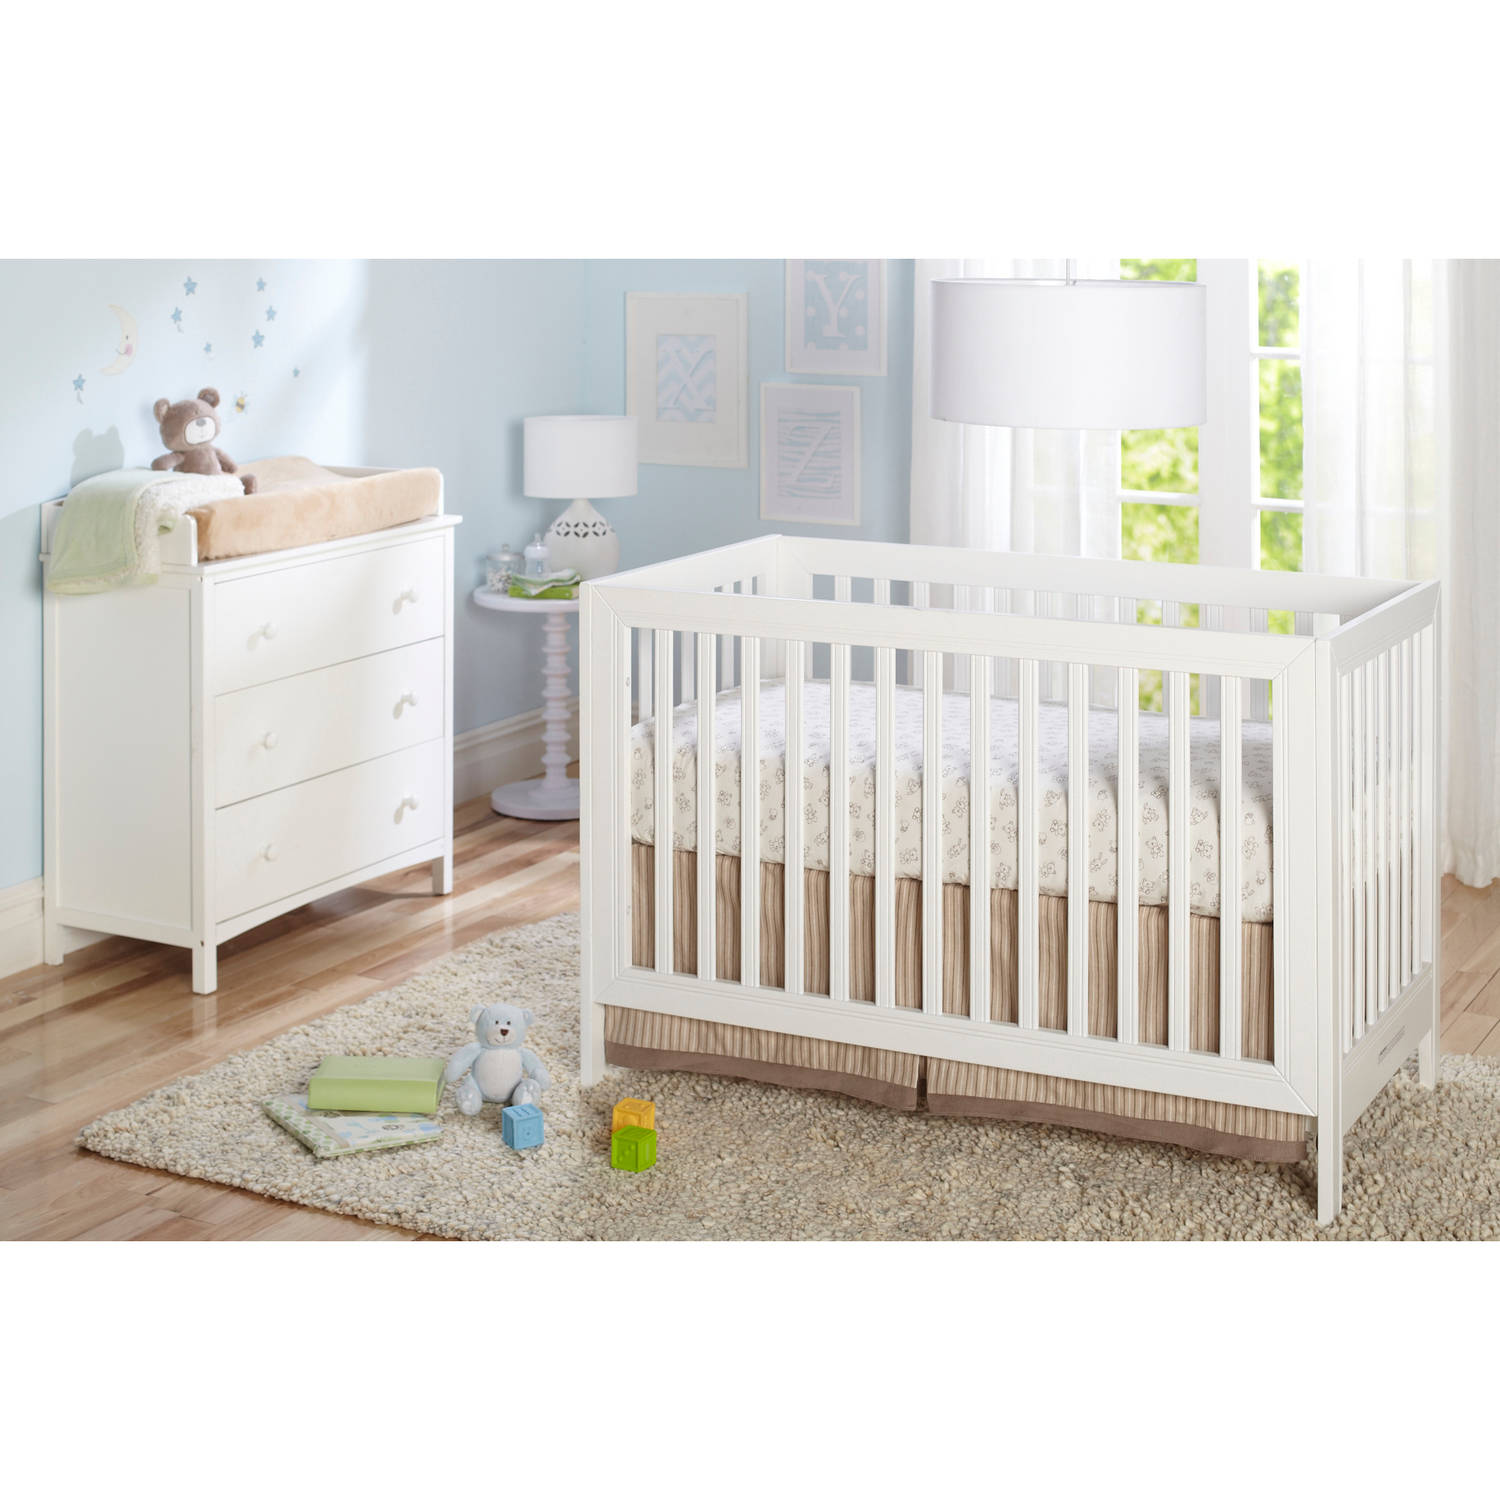 sorelle simple 3drawer dresser and changing table choose your finish walmartcom - Sorelle Cribs